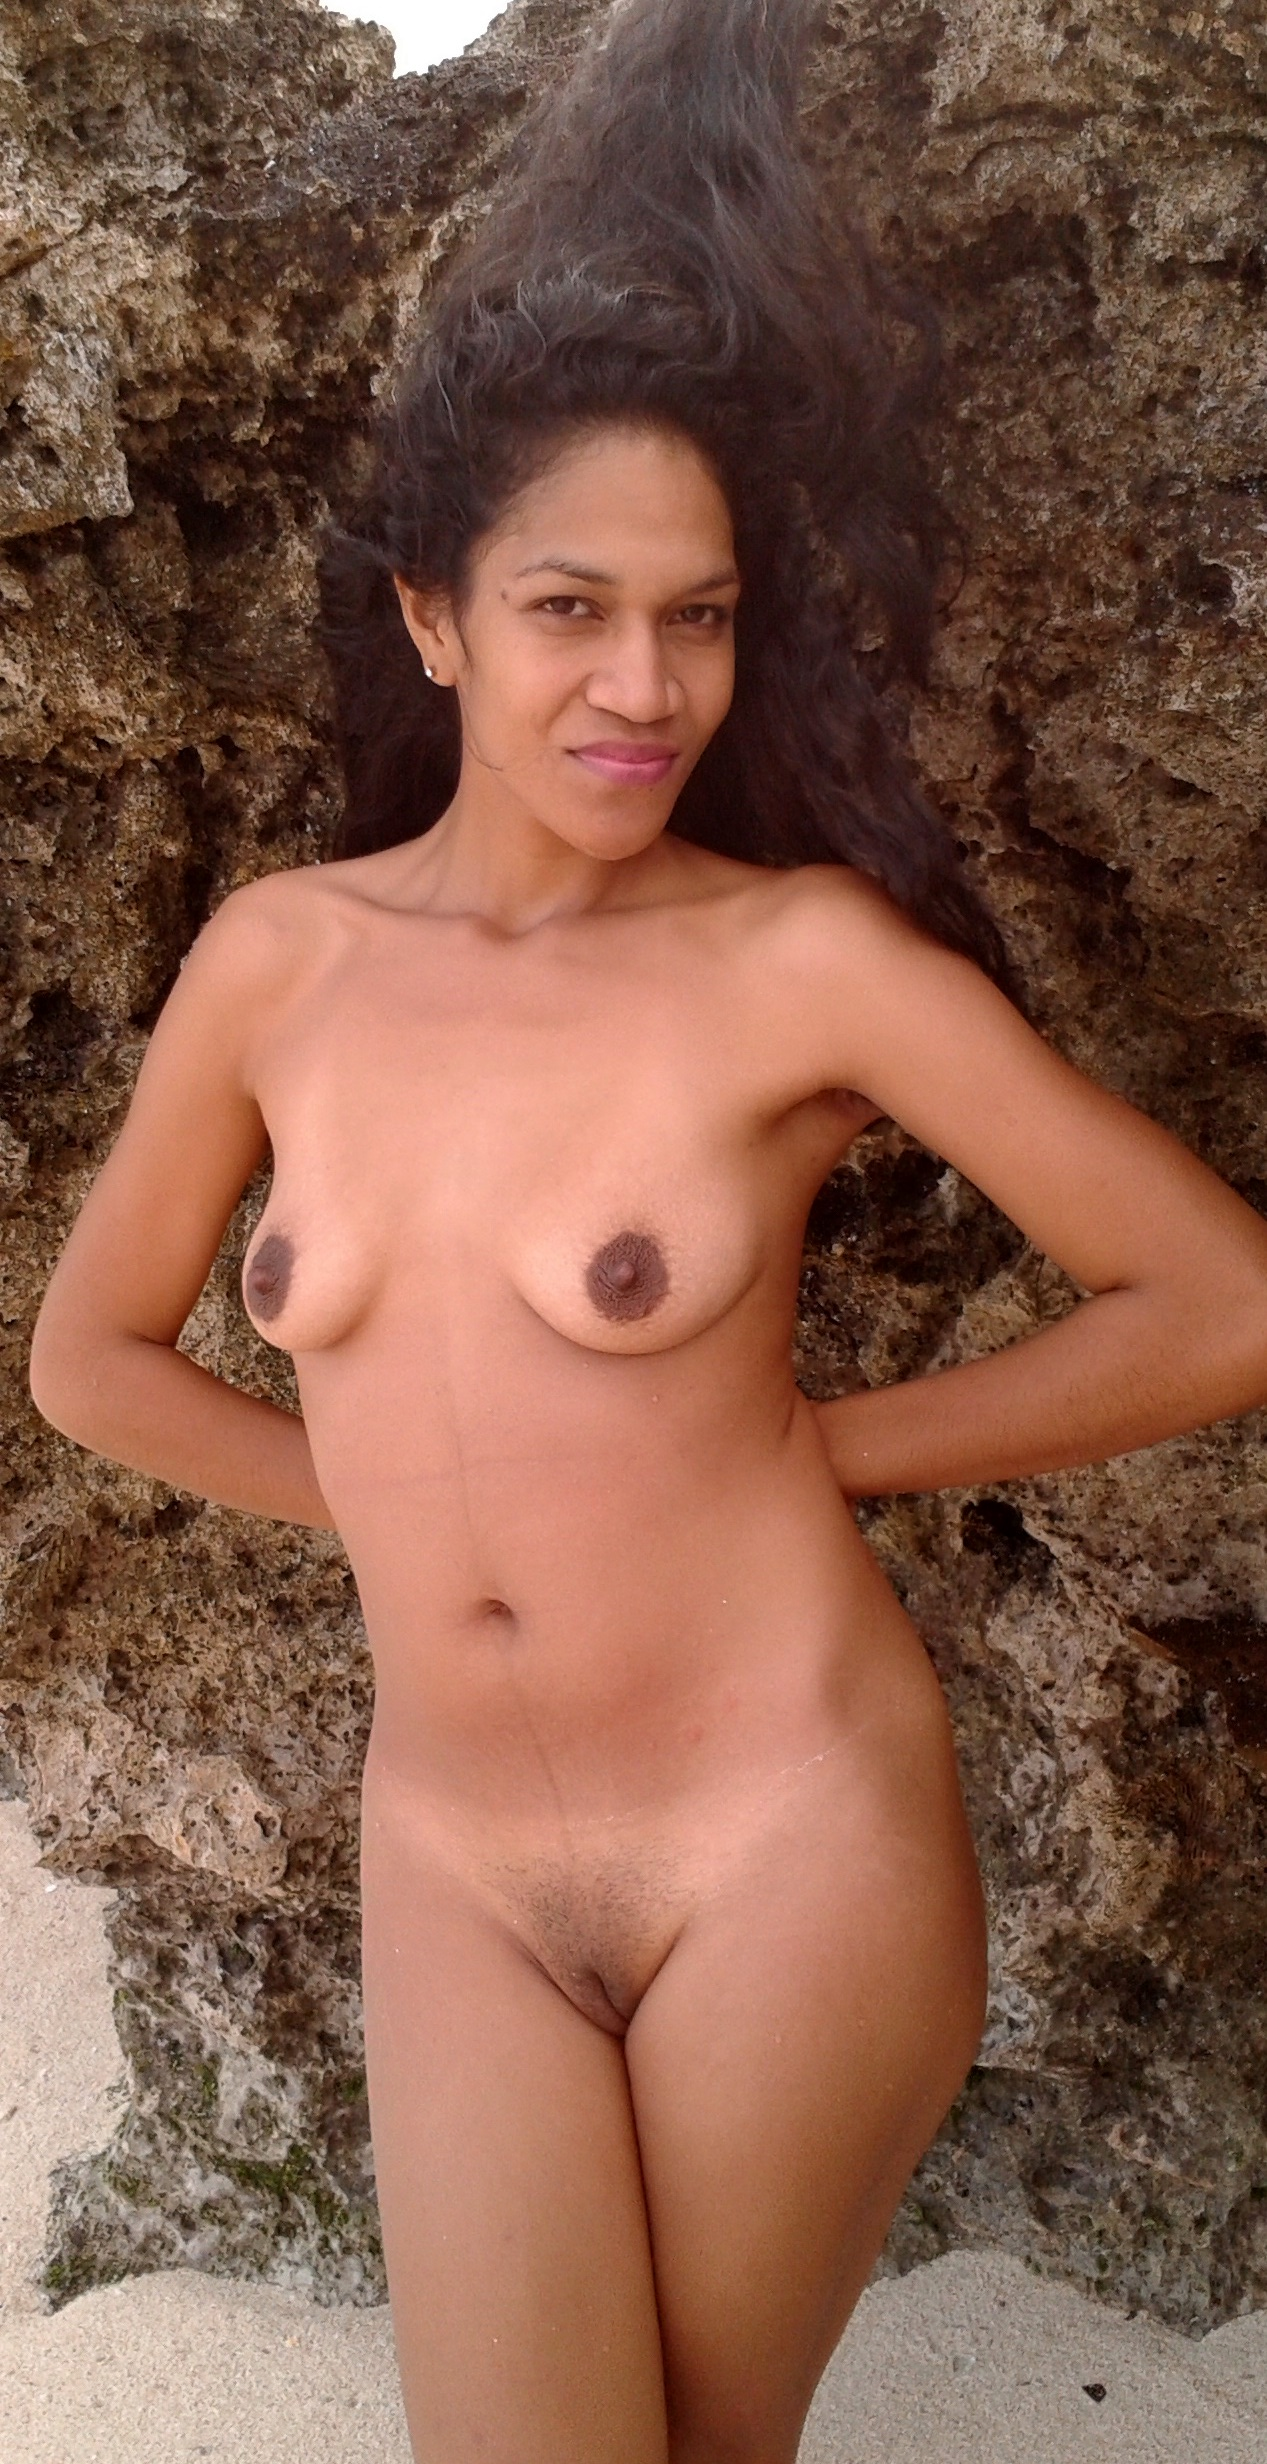 Beautiful woman hairy pussy